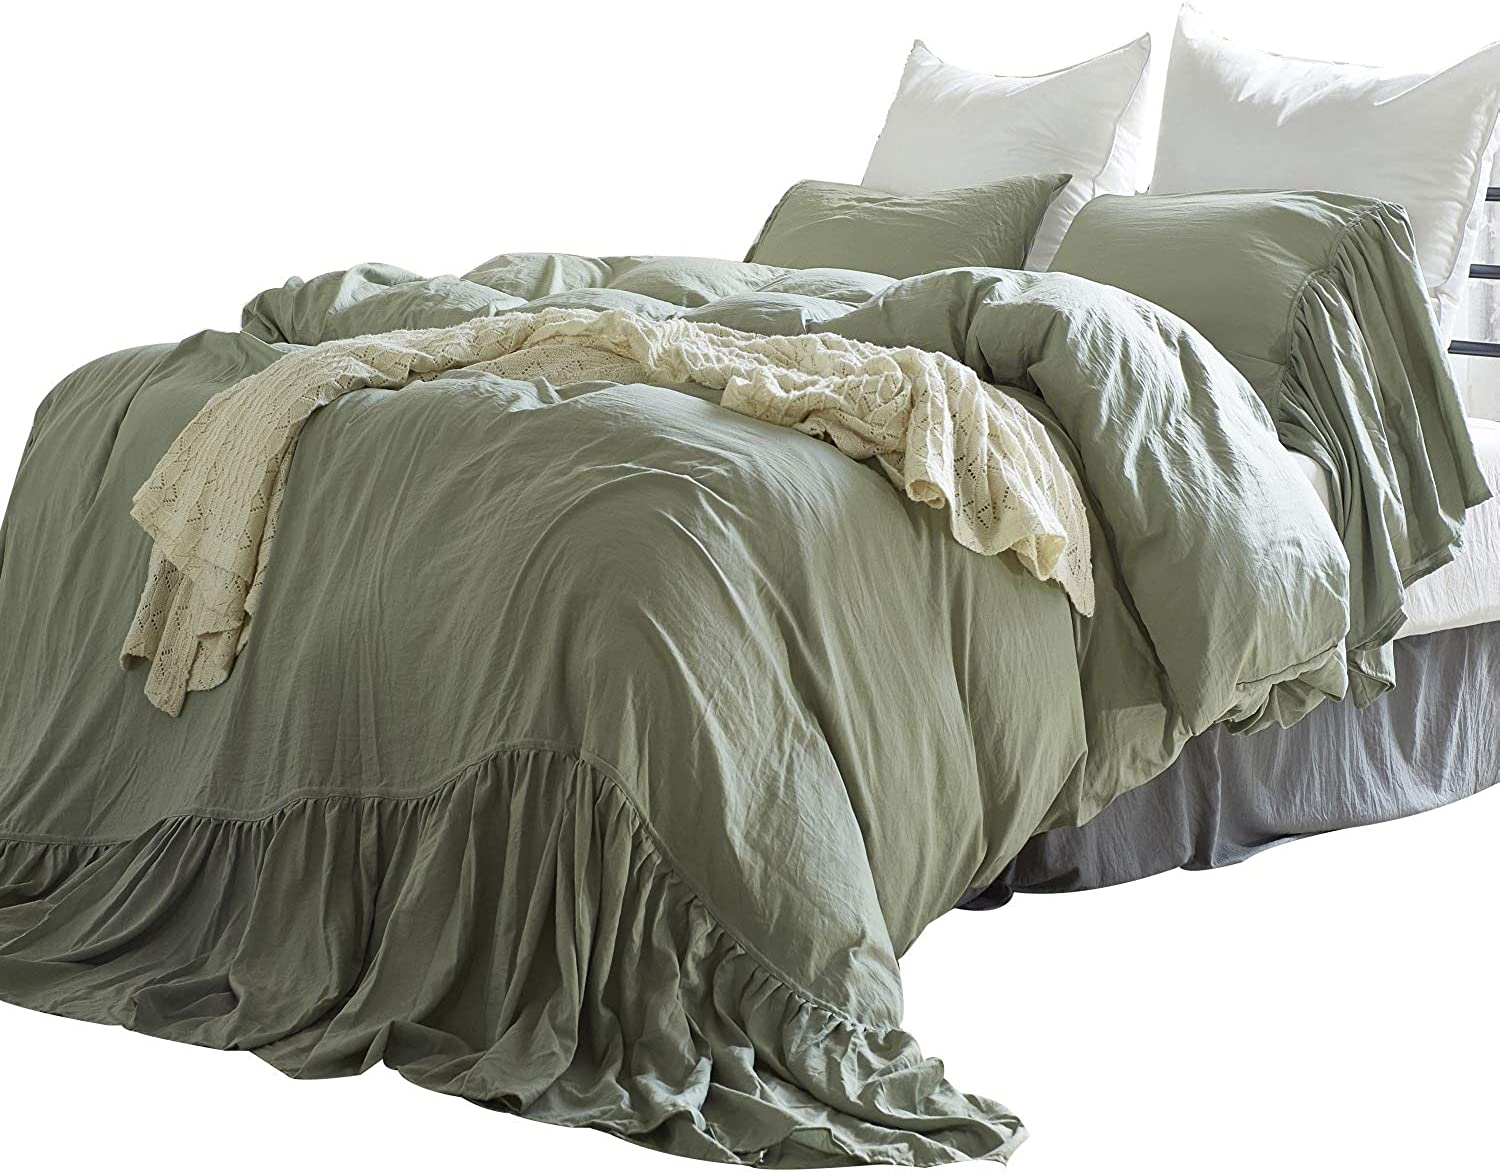 YOUSA 100% Natural Washed Cotton-Like Microfiber Duvet Cover Set Solid Green Rural Princess Lace Bedding Zipper Soft Durable (Twin,Green)